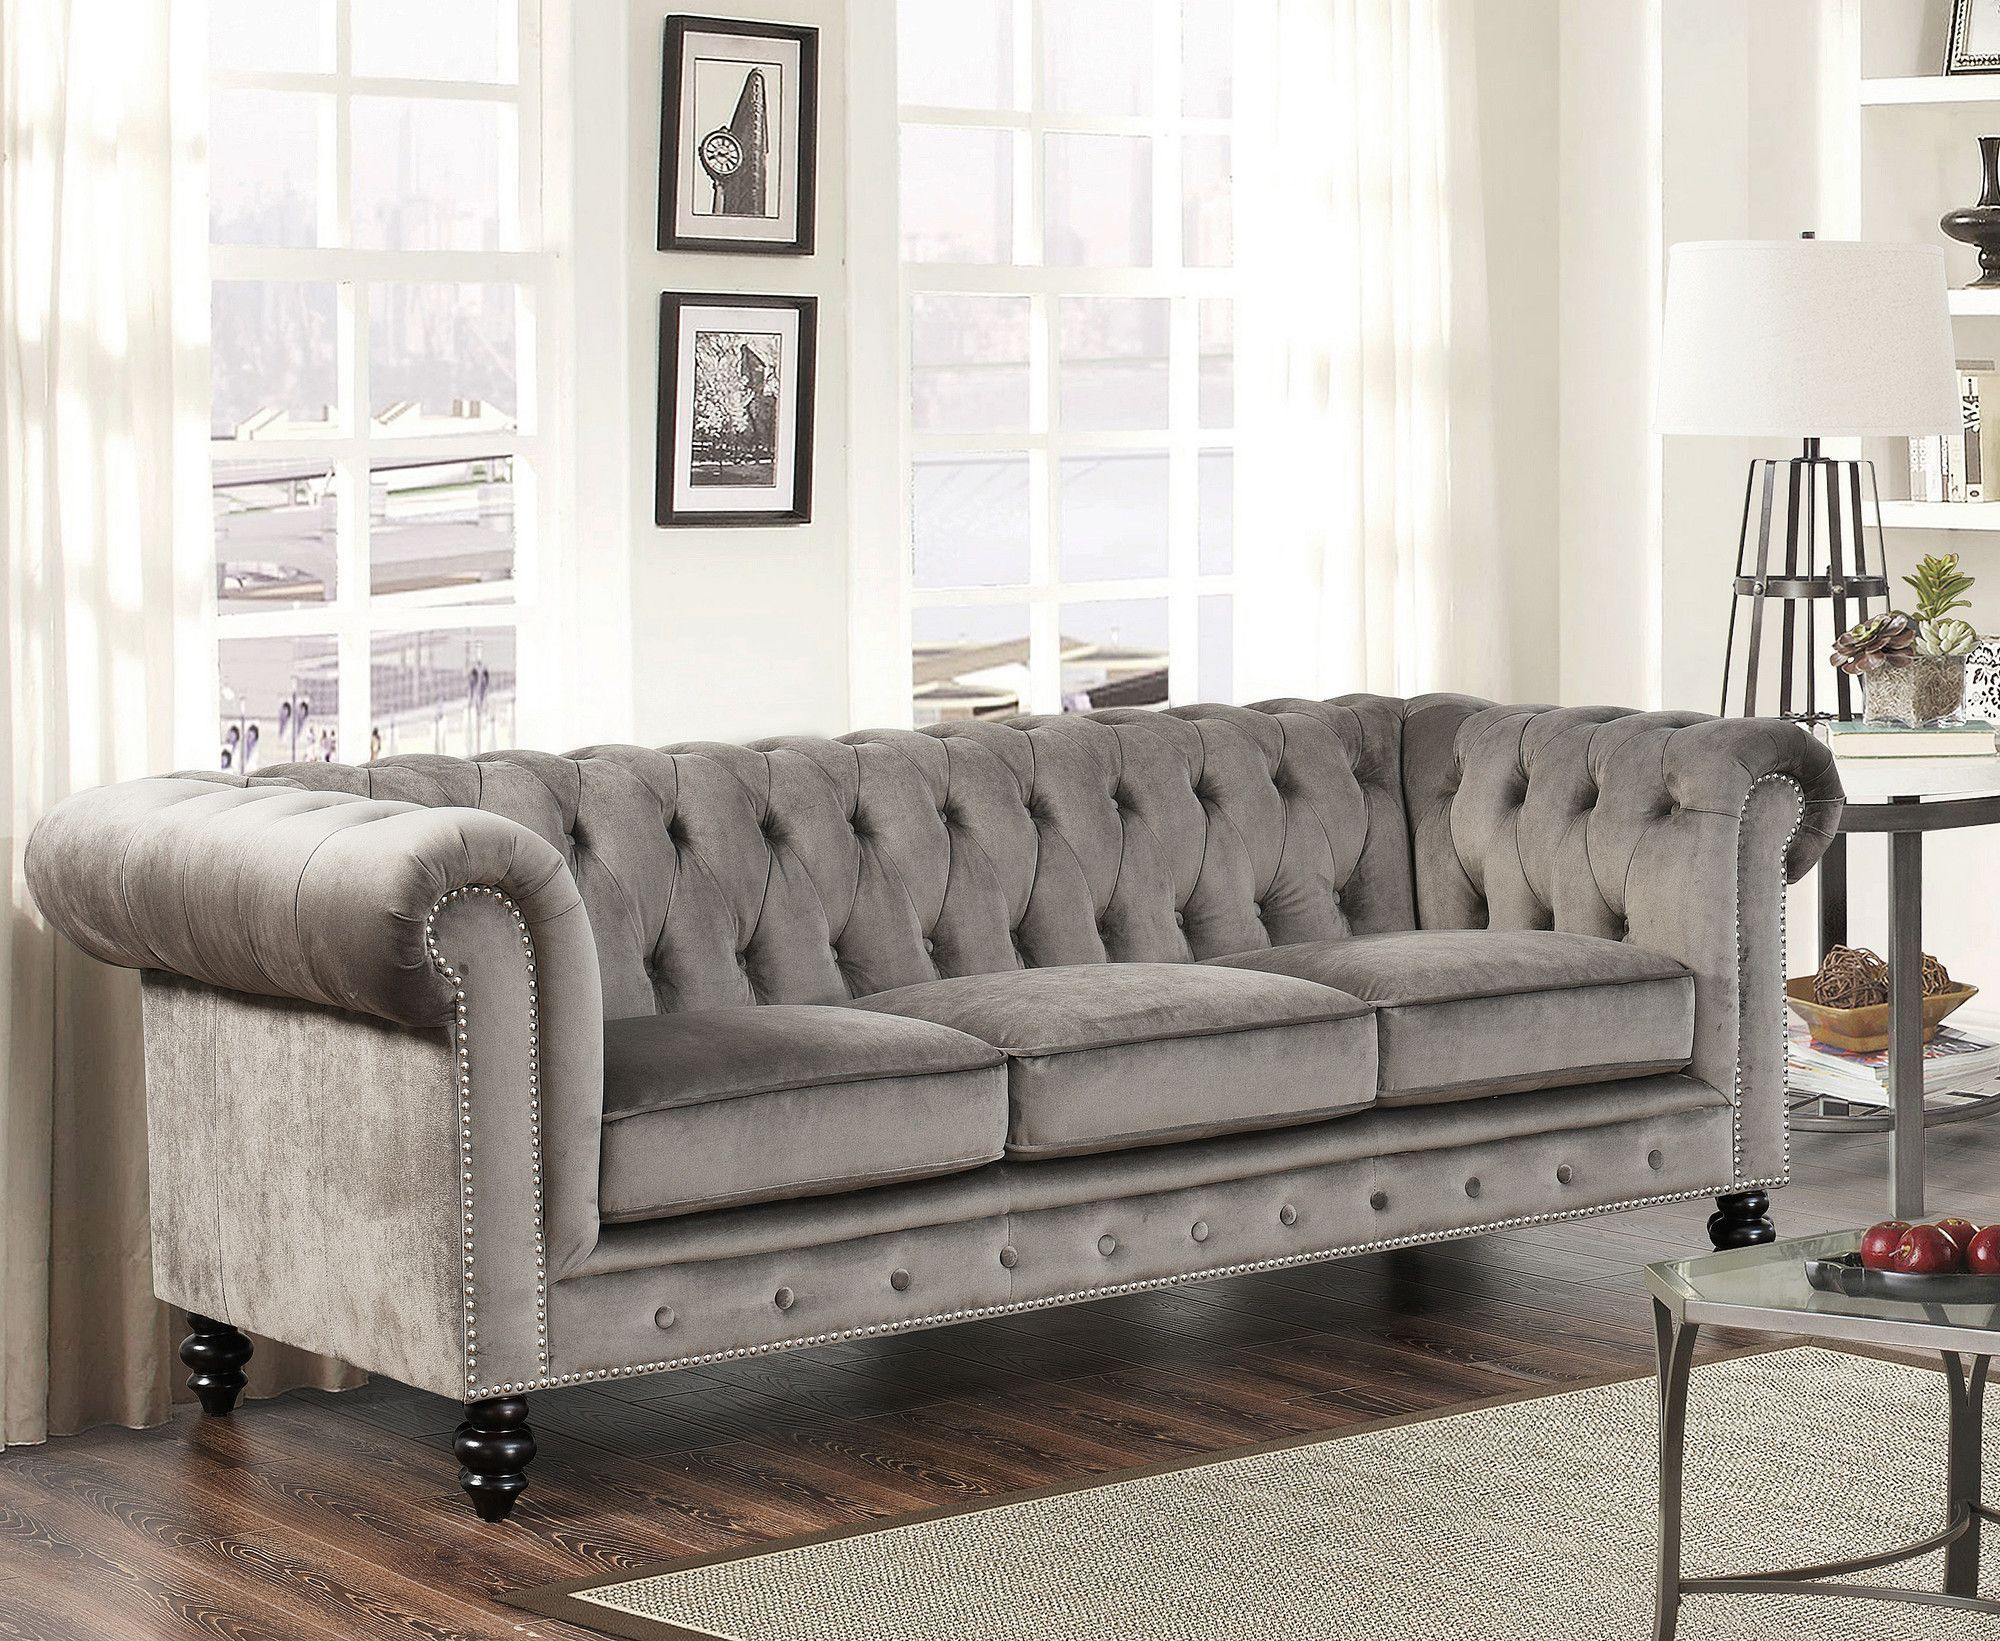 Chesterfield Couchtisch Grand Chesterfield Sofa Living Room Velvet Chesterfield Sofa